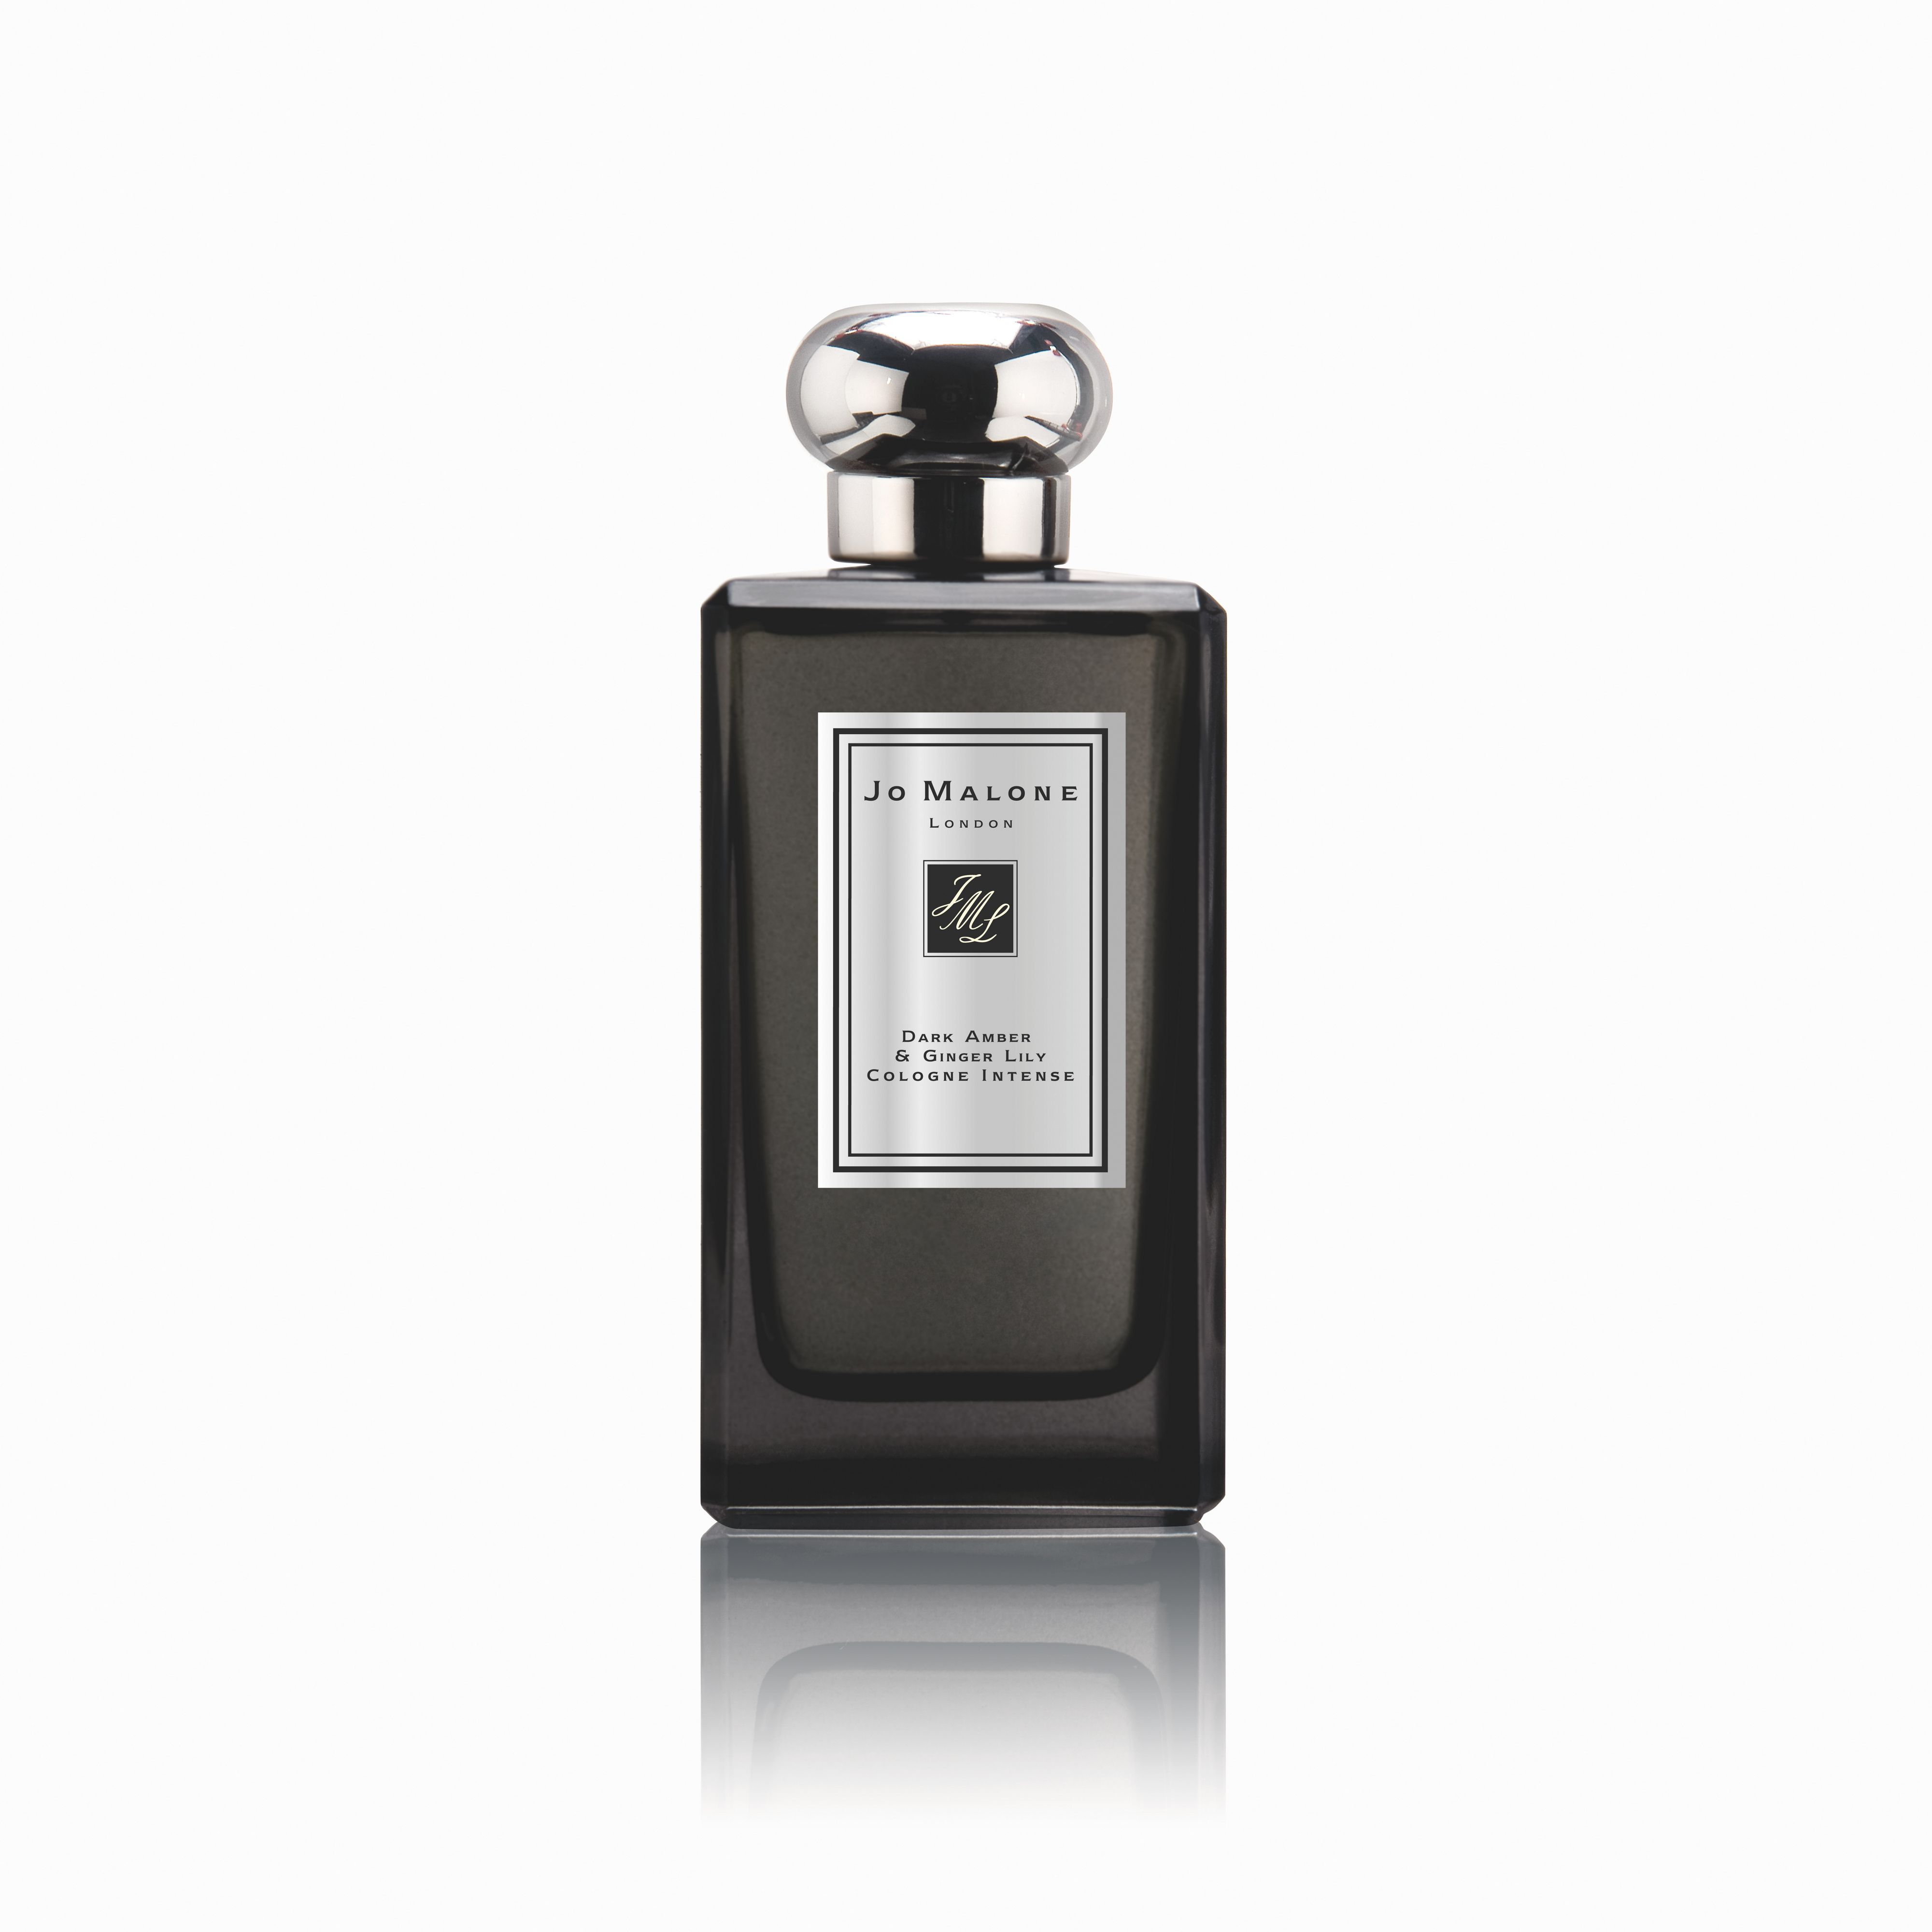 Dark Amber & Ginger Lily Cologne Intense 100ml